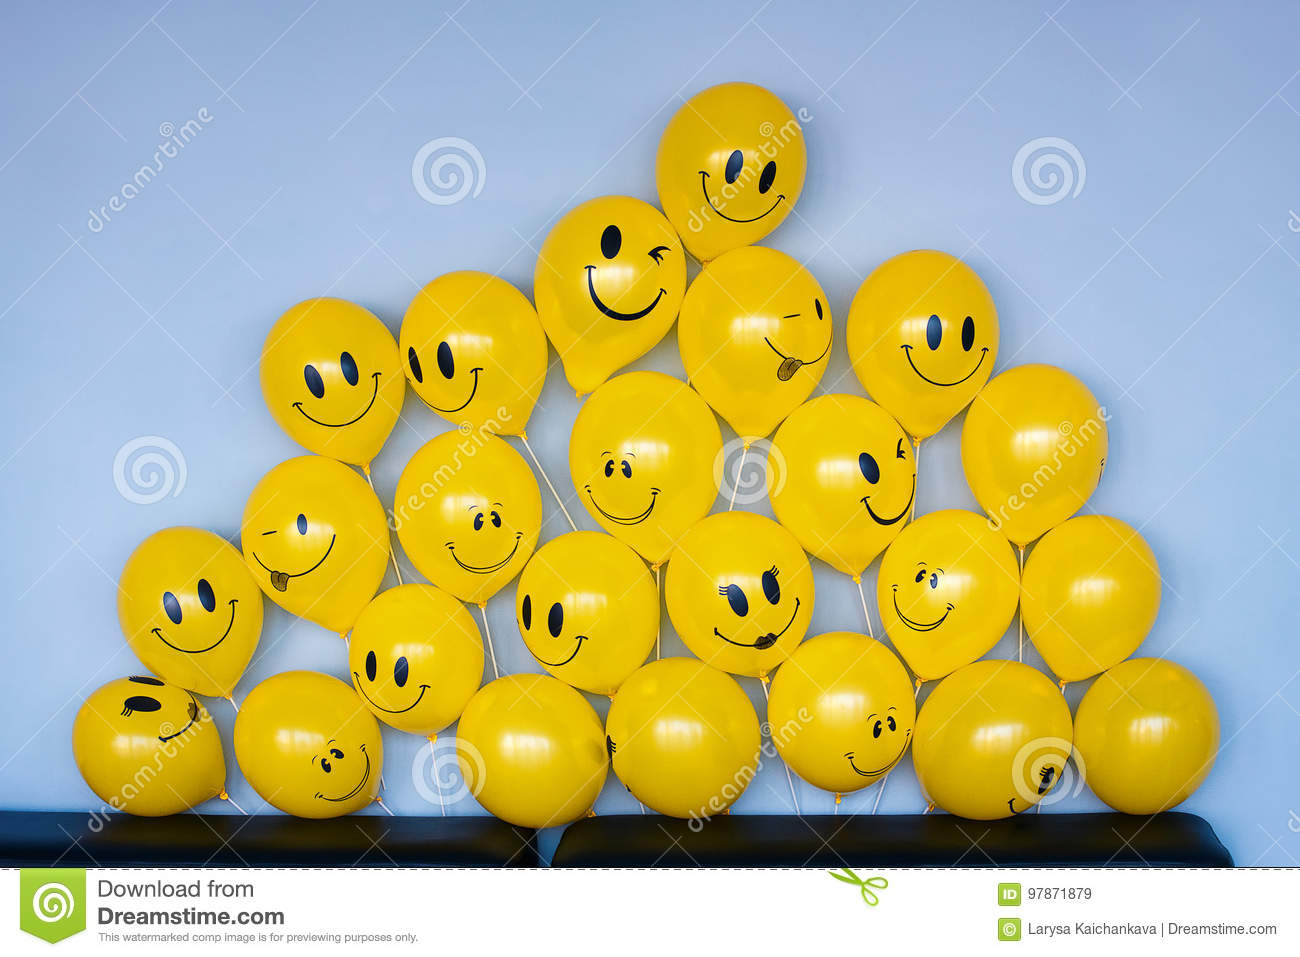 Laughing emoticons stock image. Image of decoration, anniversary ...